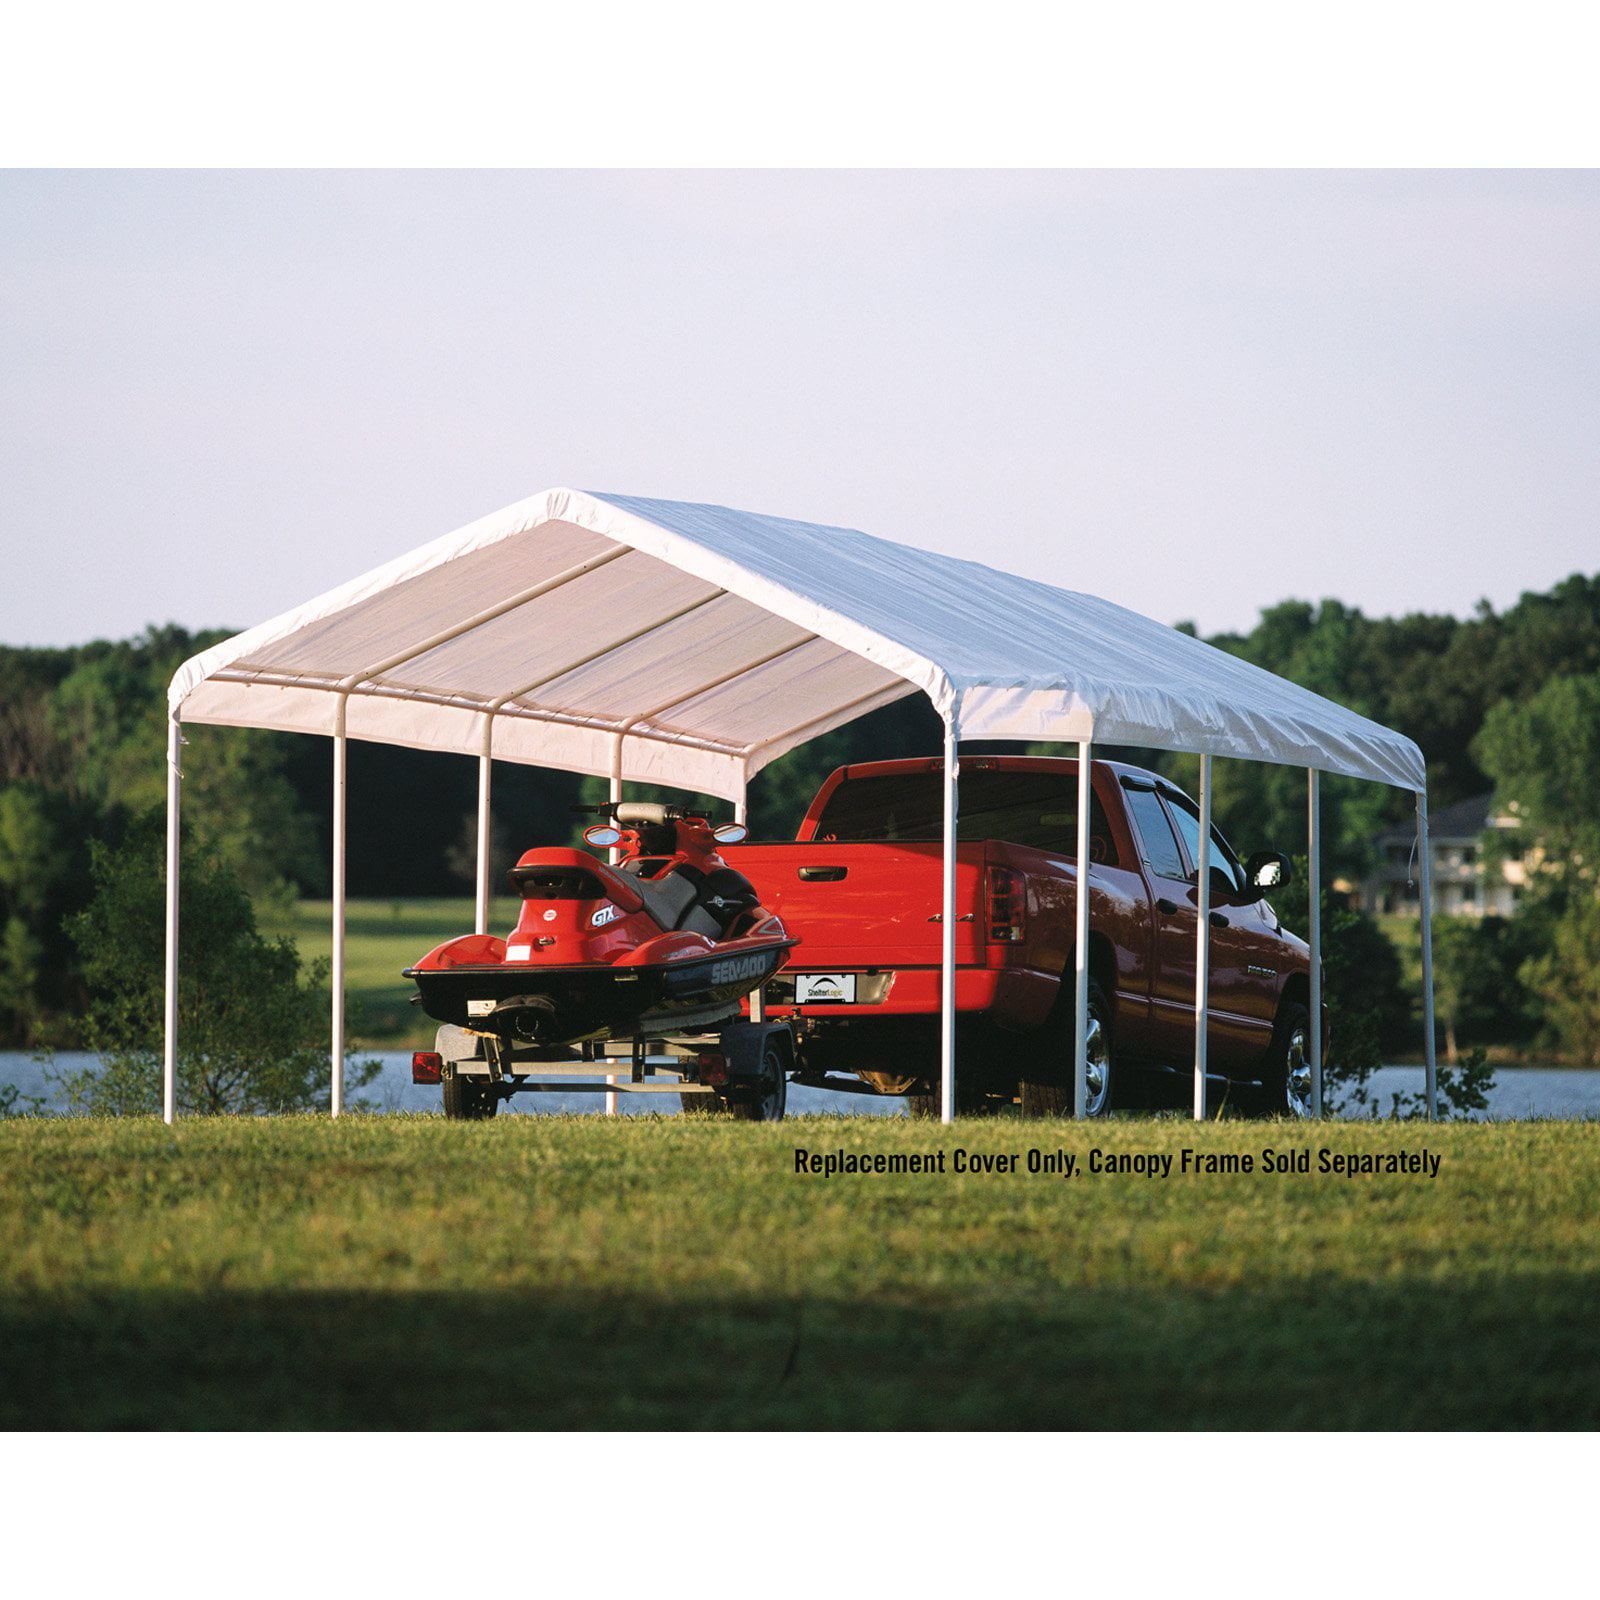 "Shelterlogic 12' x 26' White Canopy Replacement Cover Fits 2"" Frame by ShelterLogic Corp."